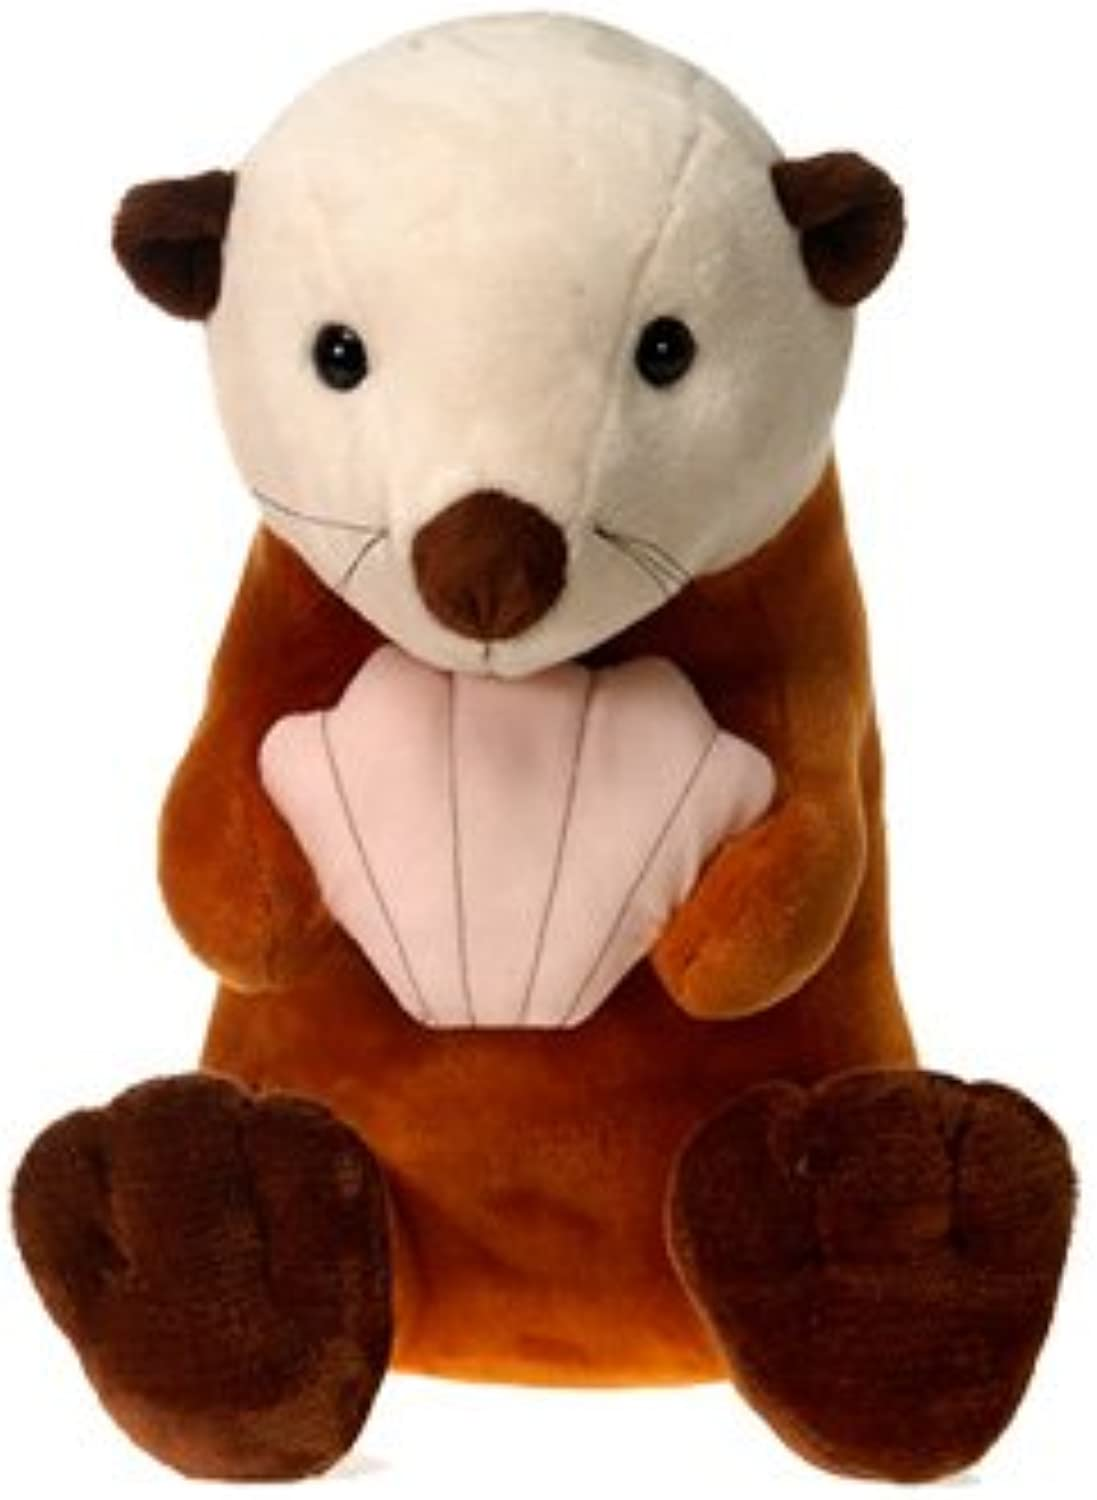 Comfies Bean Bag Sea Otter Large 16 by Fiesta